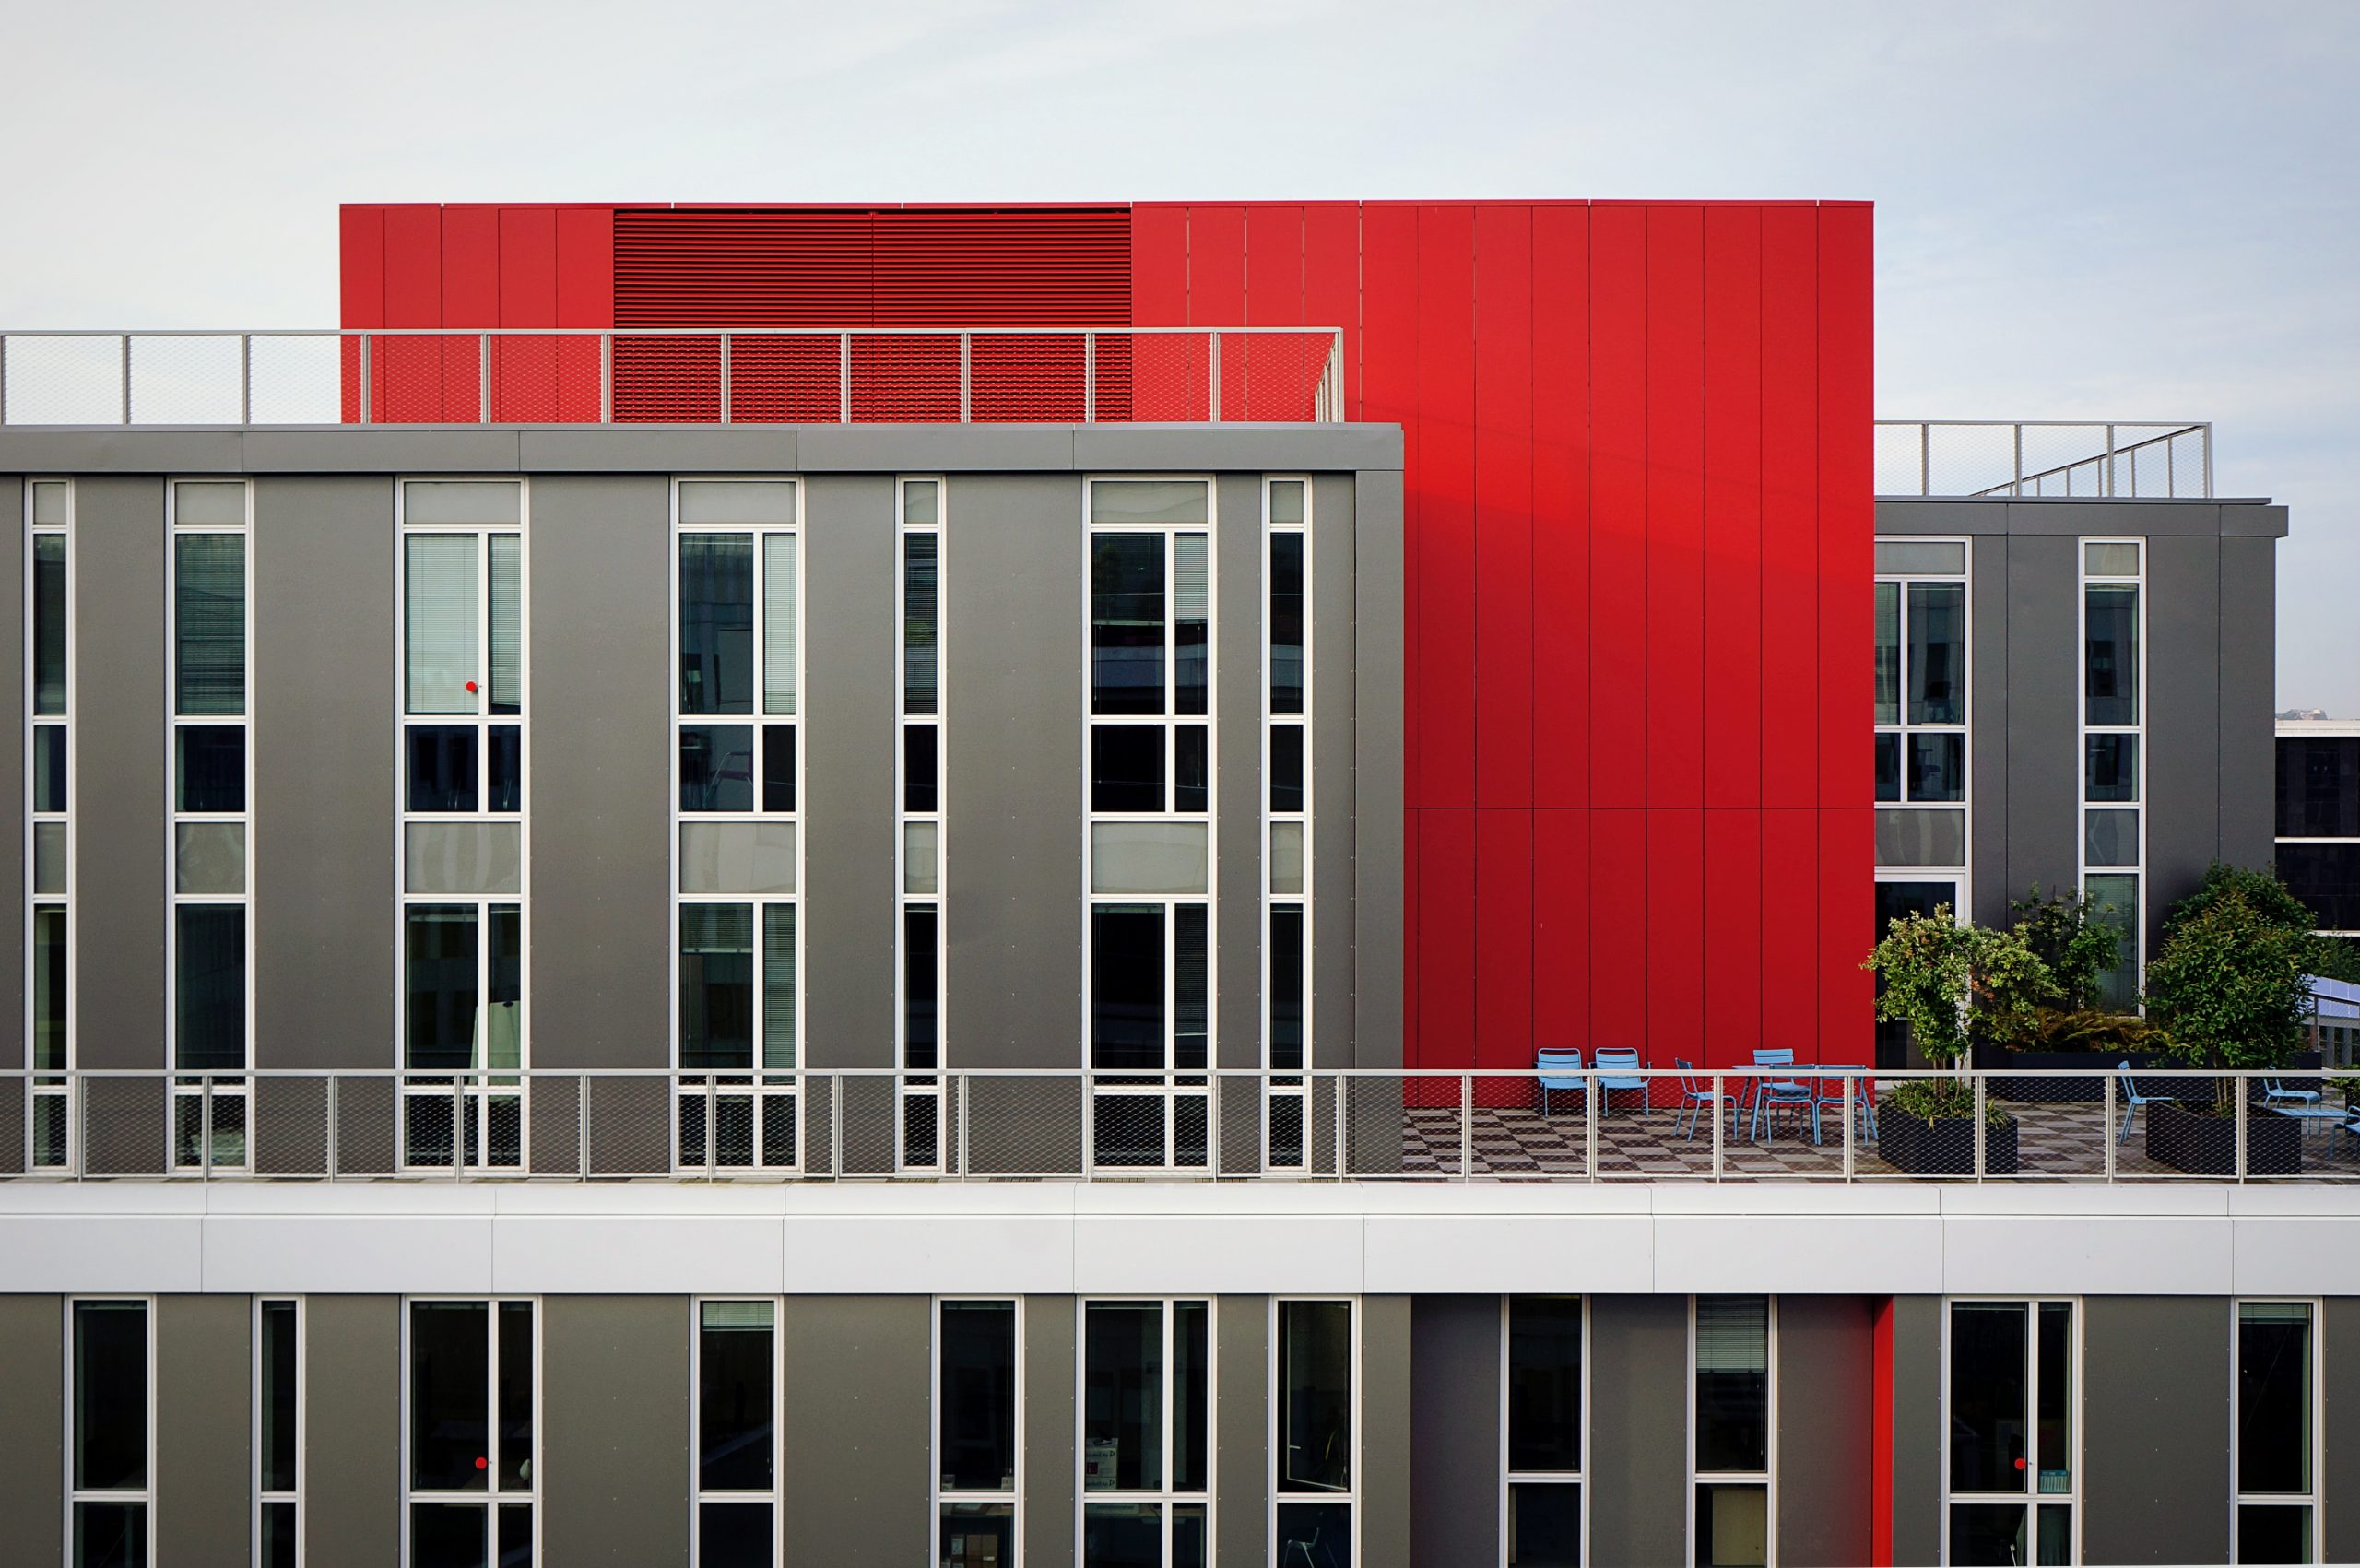 Painted grey and red commercial building